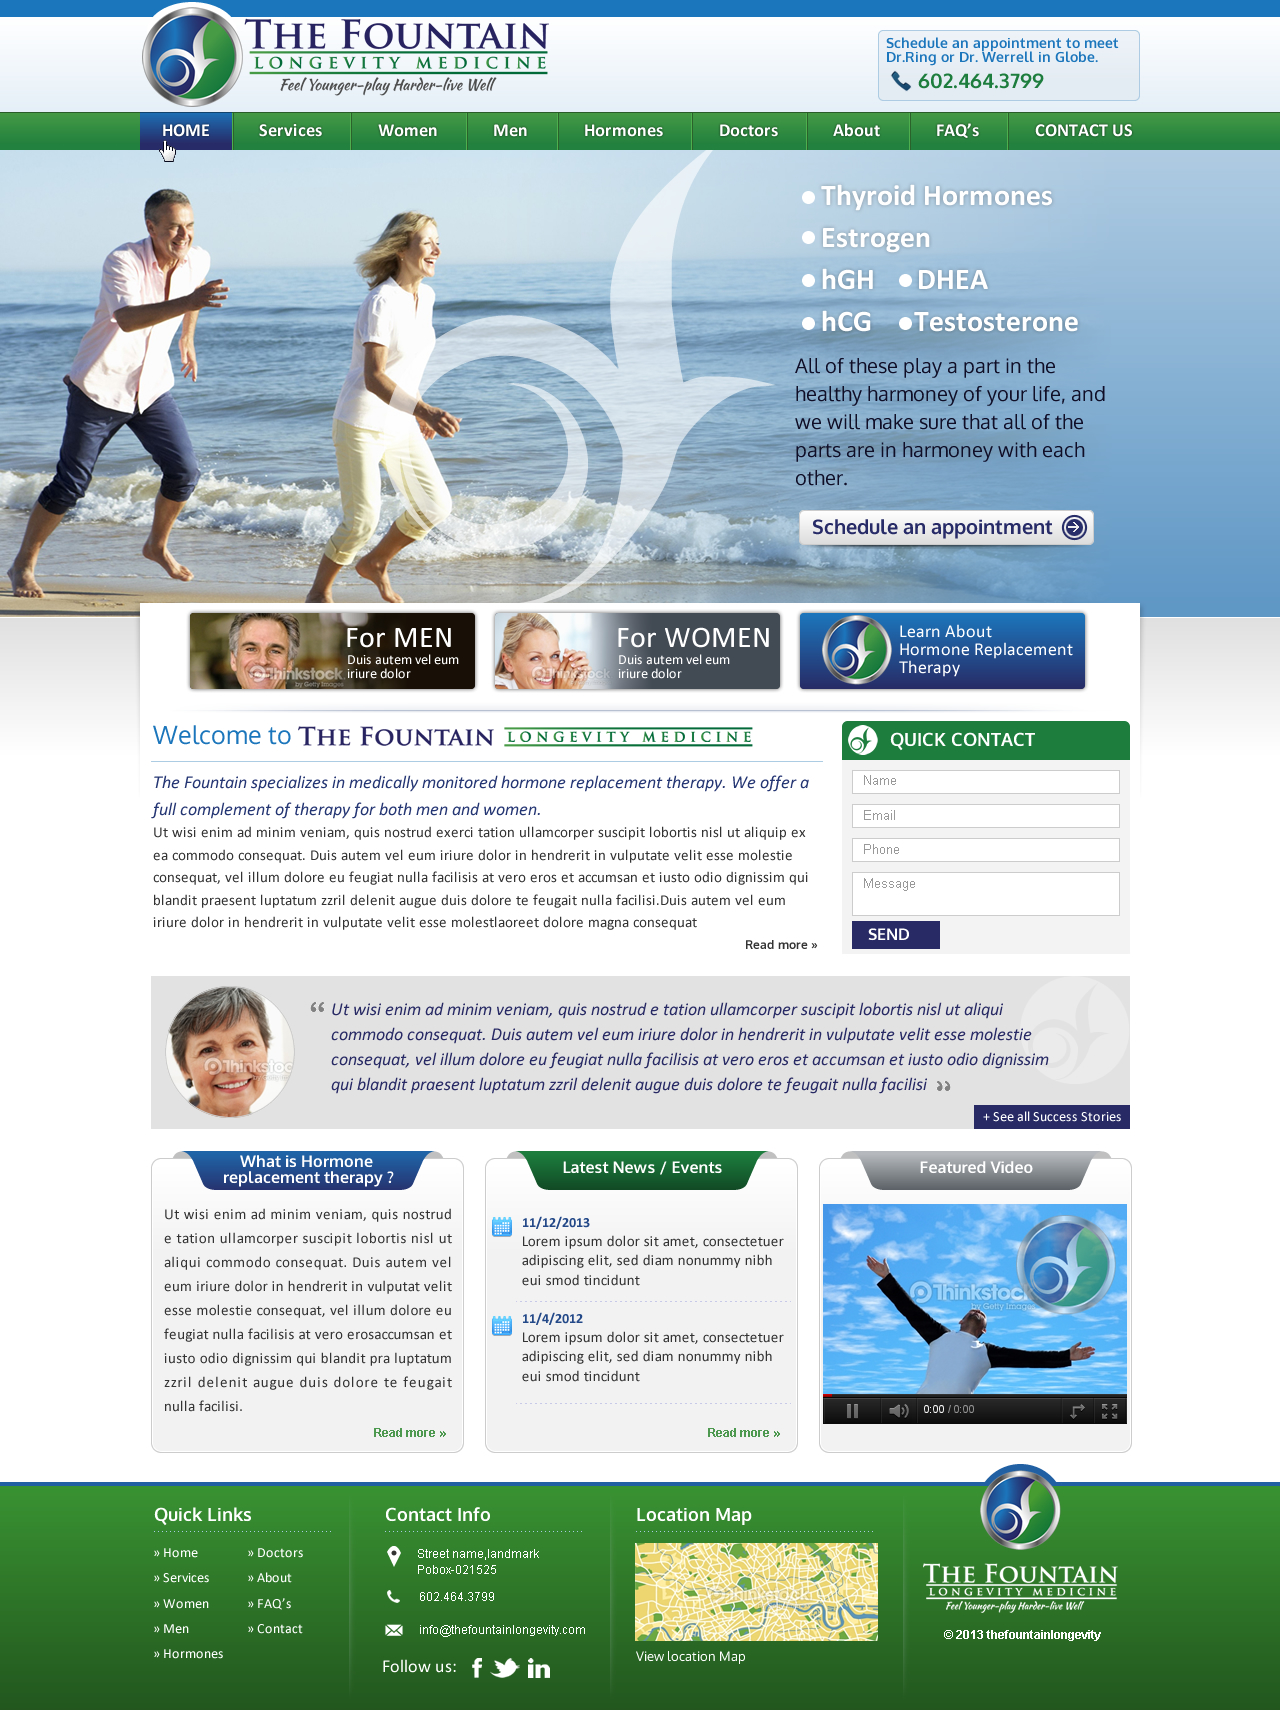 The Fountain Medical Hormone Web Site - Health